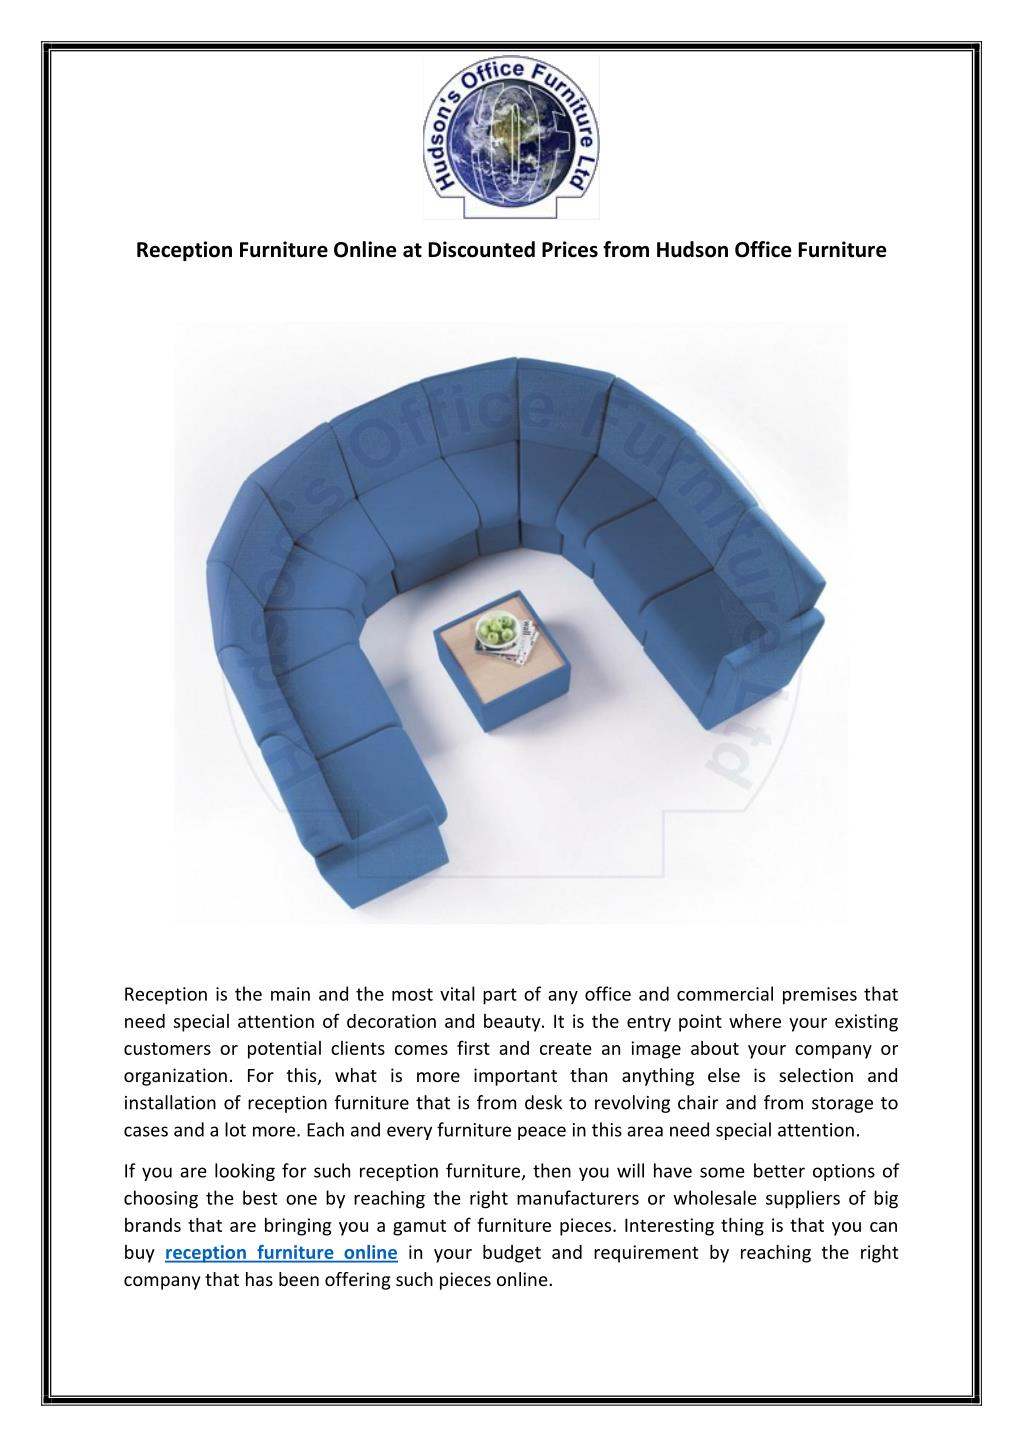 Ppt Reception Furniture Online At Discounted Prices From Hudson Office Furniture Powerpoint Presentation Id 7518715